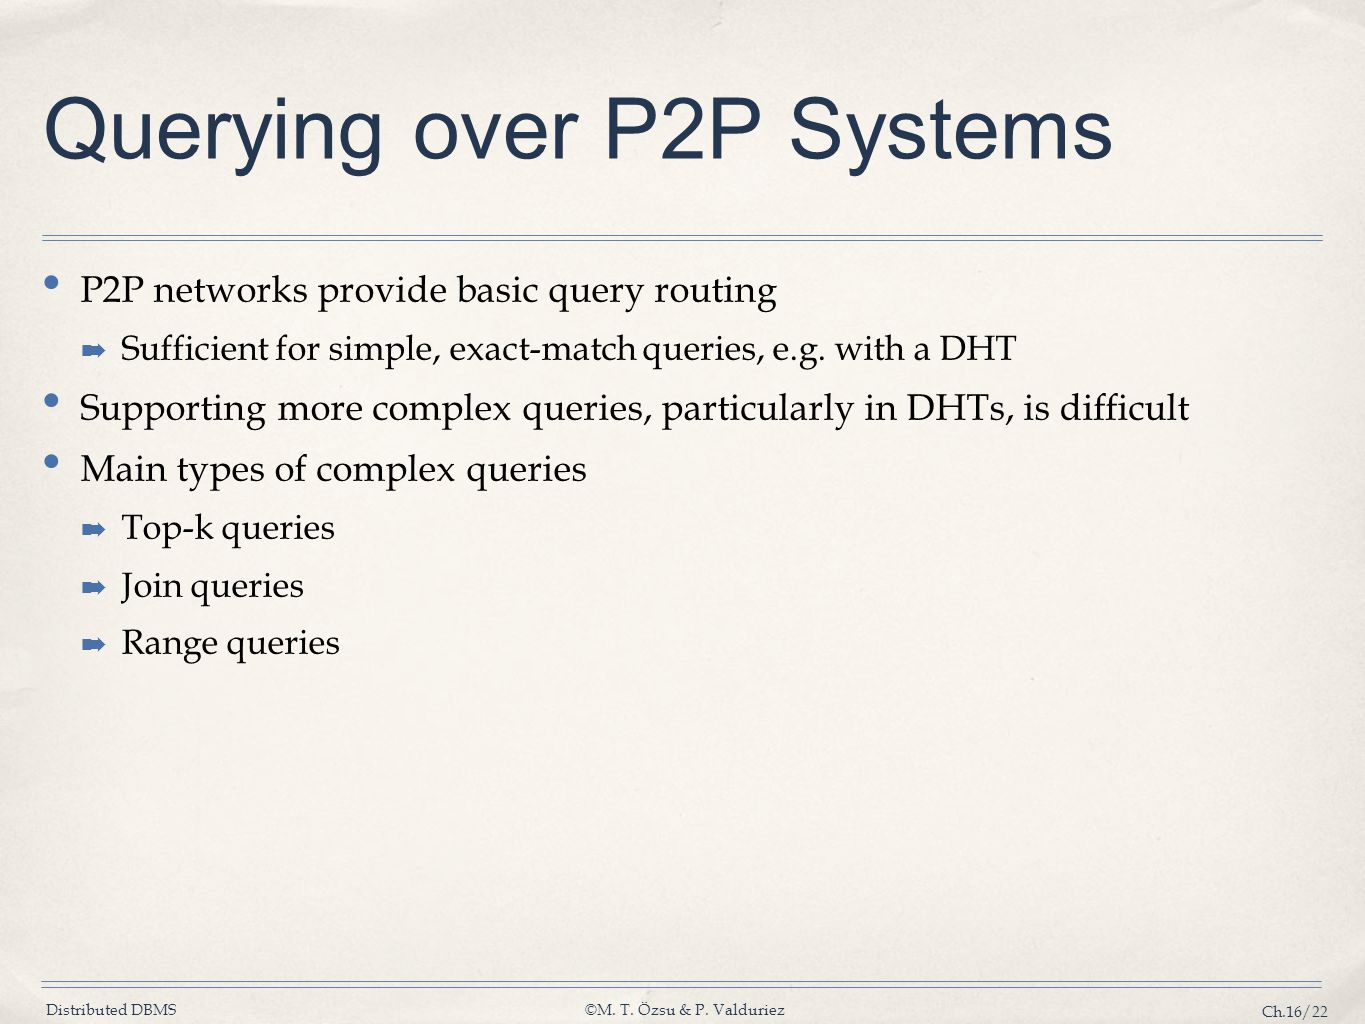 Distributed DBMS©M. T. Özsu & P. Valduriez Ch.16/22 Querying over P2P Systems P2P networks provide basic query routing ➡ Sufficient for simple, exact-